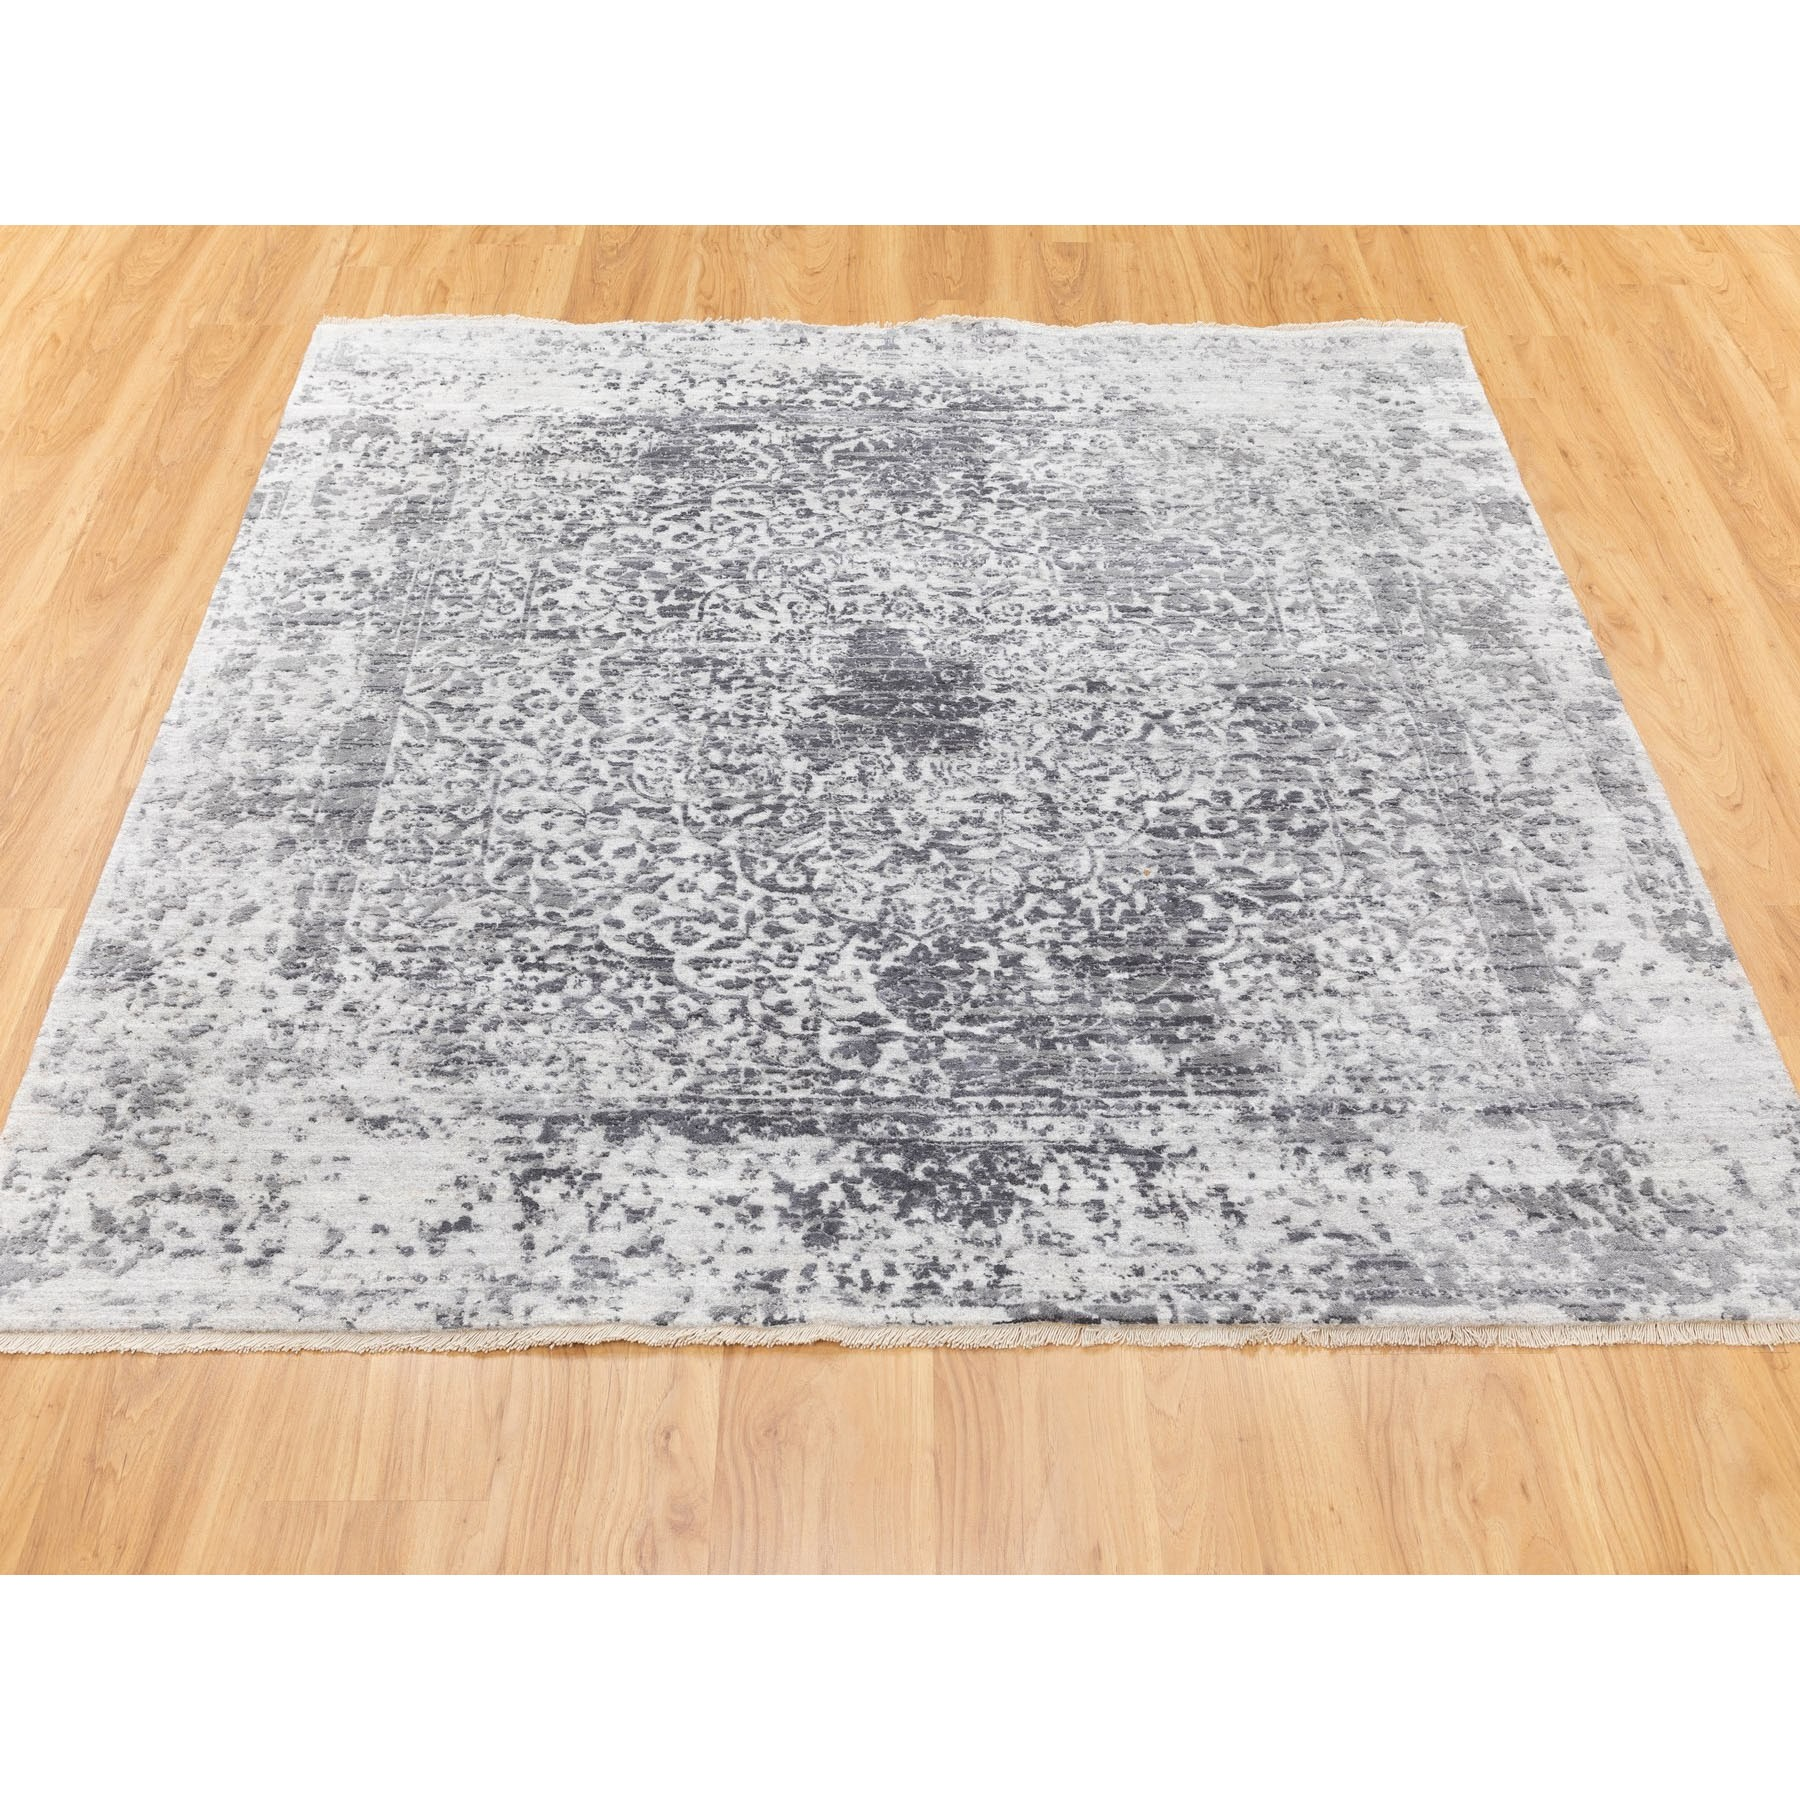 "6'2""x6'2"" Square Wool And Silk Hand Knotted Broken Persian Design Hand Knotted Oriental Rug"